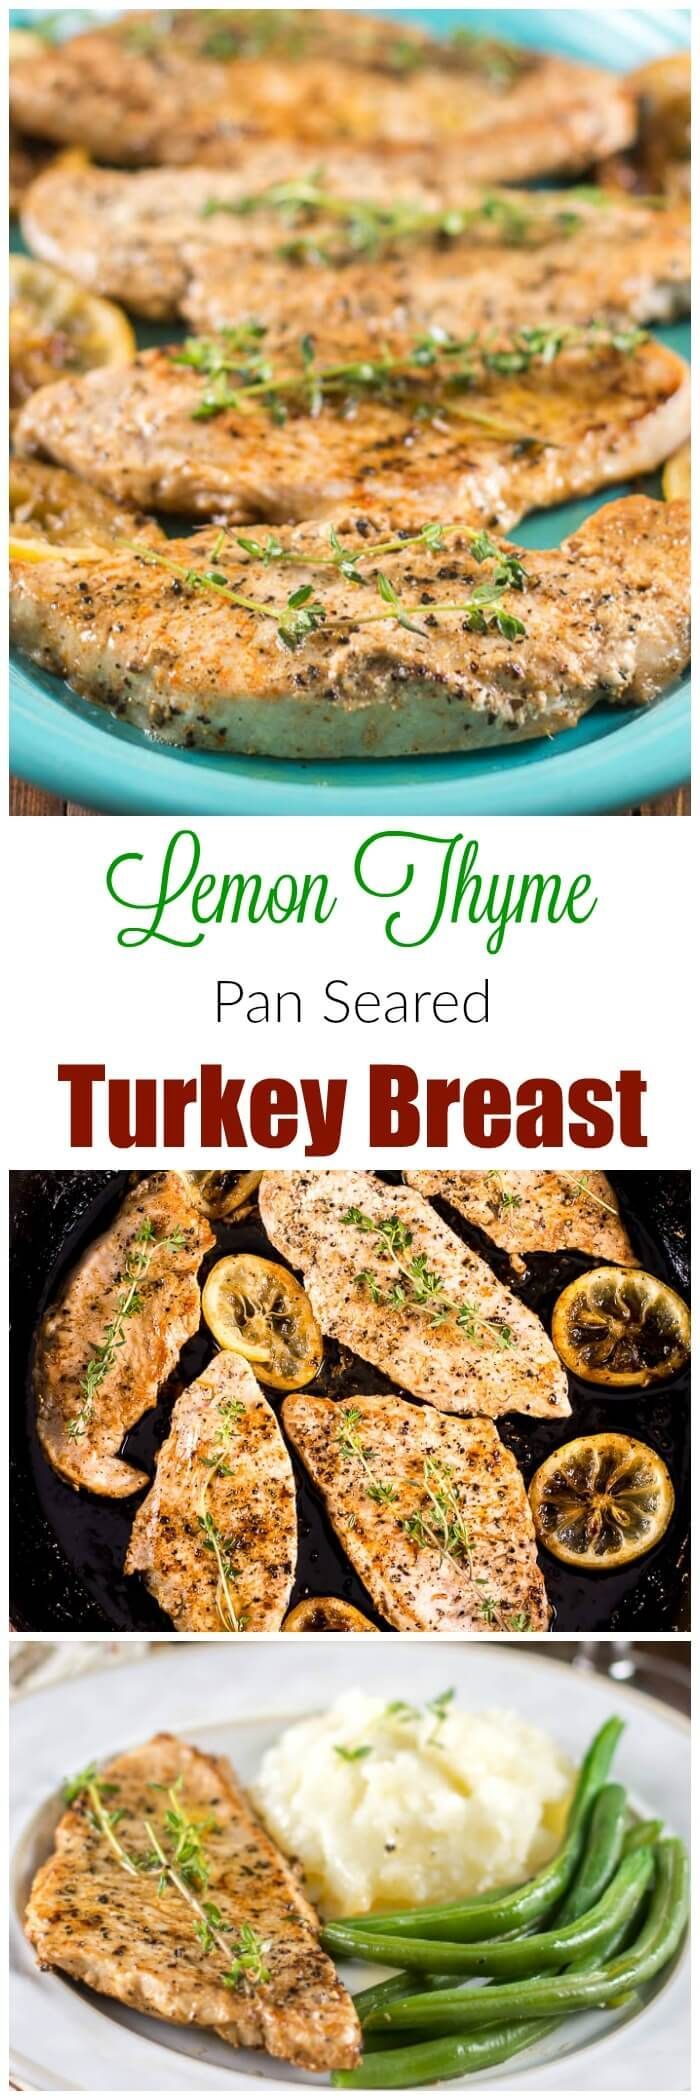 Lemon Thyme Pan Seared Turkey Breast Cutlets make an easy weeknight dinner and or a light Thanksgiving holiday dinner. #700Reasons #ad via @flavormosaic